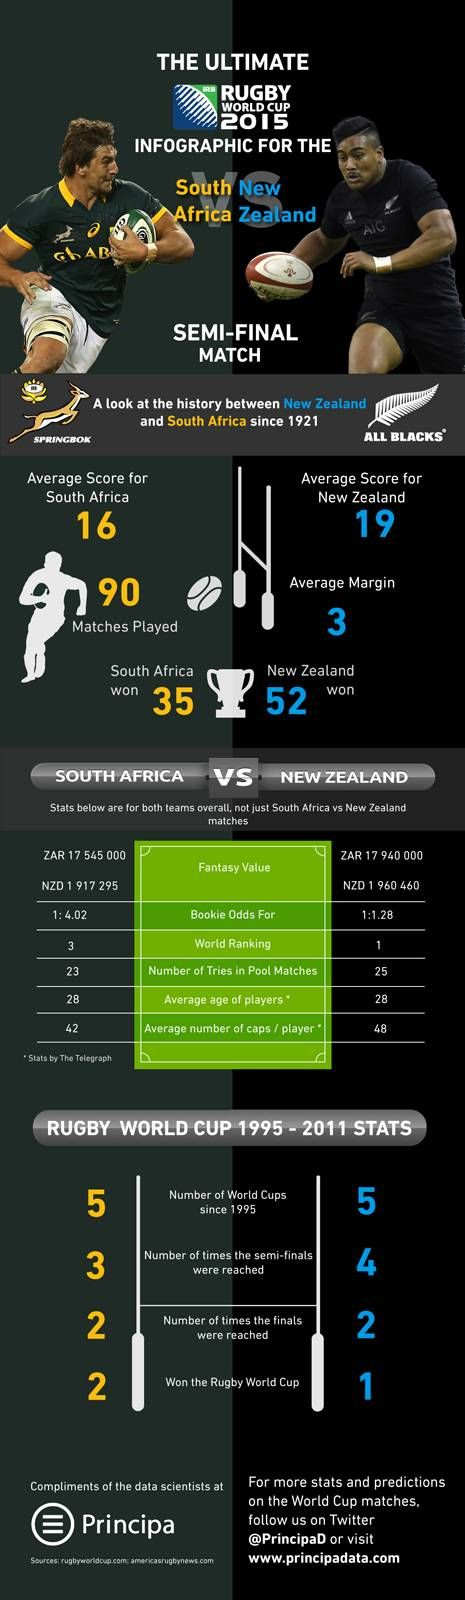 Rugby World Cup: Springboks brace for mammoth encounter with All Blacks | Daily Maverick